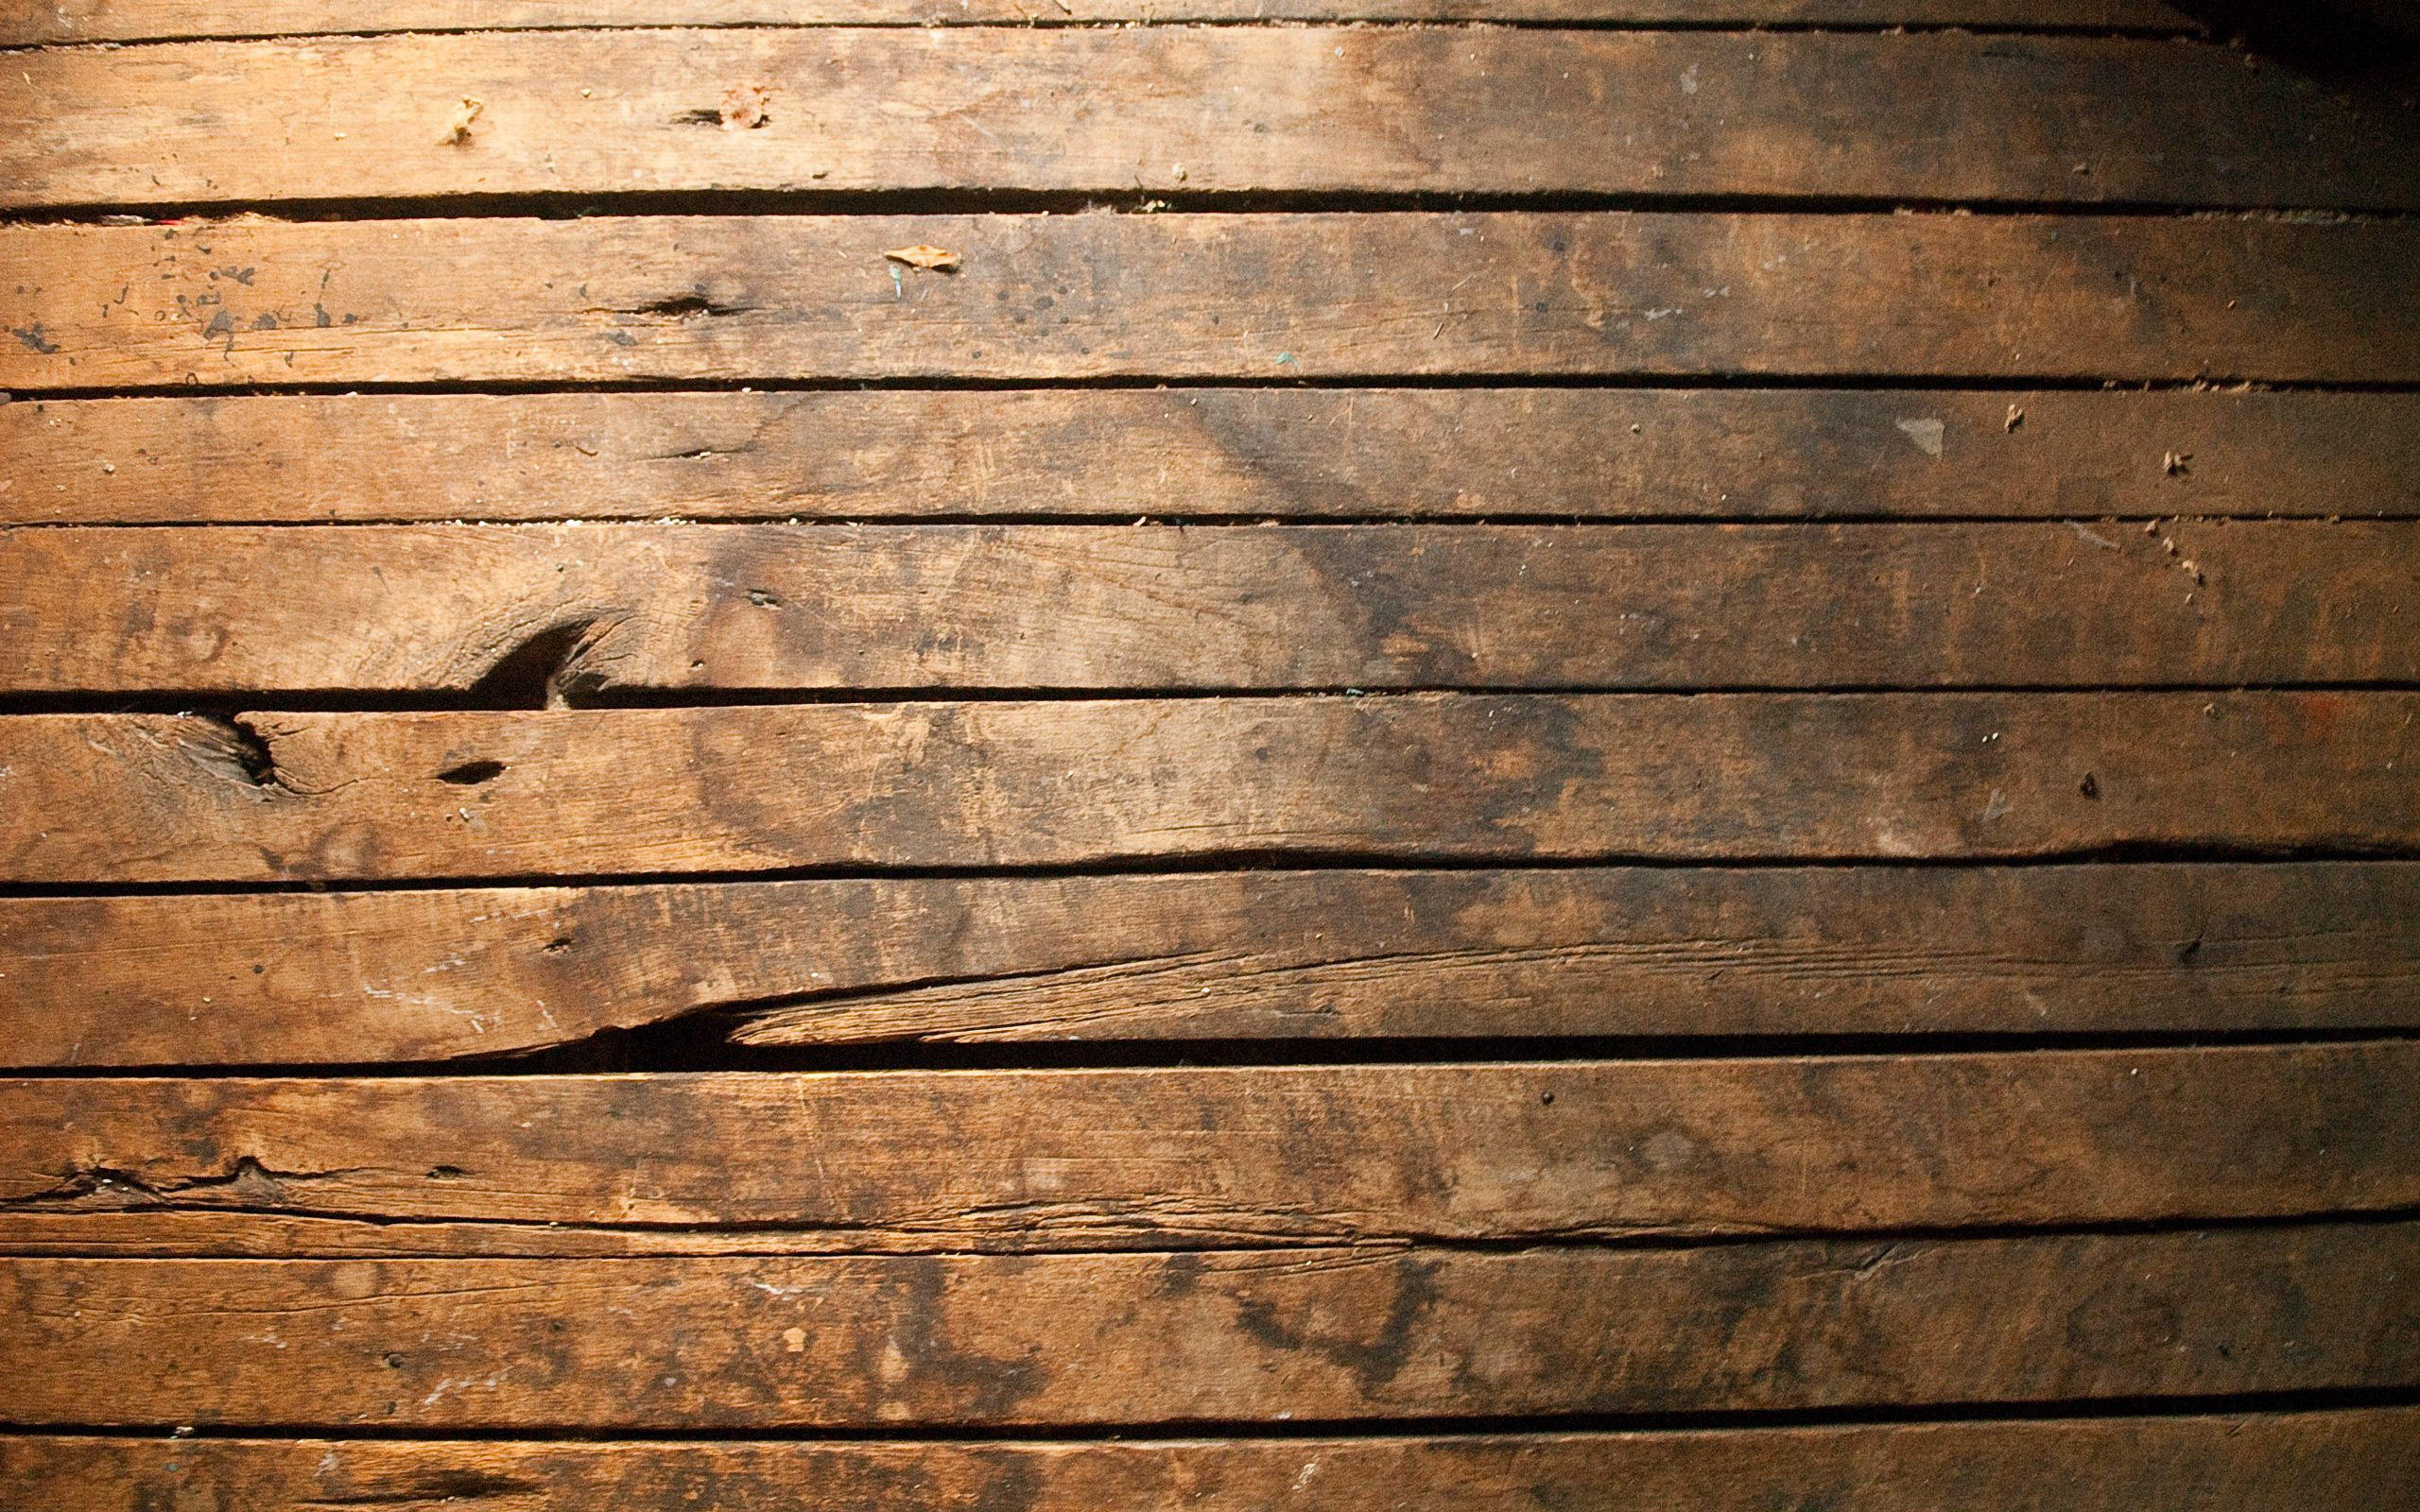 105847 download wallpaper Textures, Texture, Wood, Wooden, Planks, Board, Vertical screensavers and pictures for free